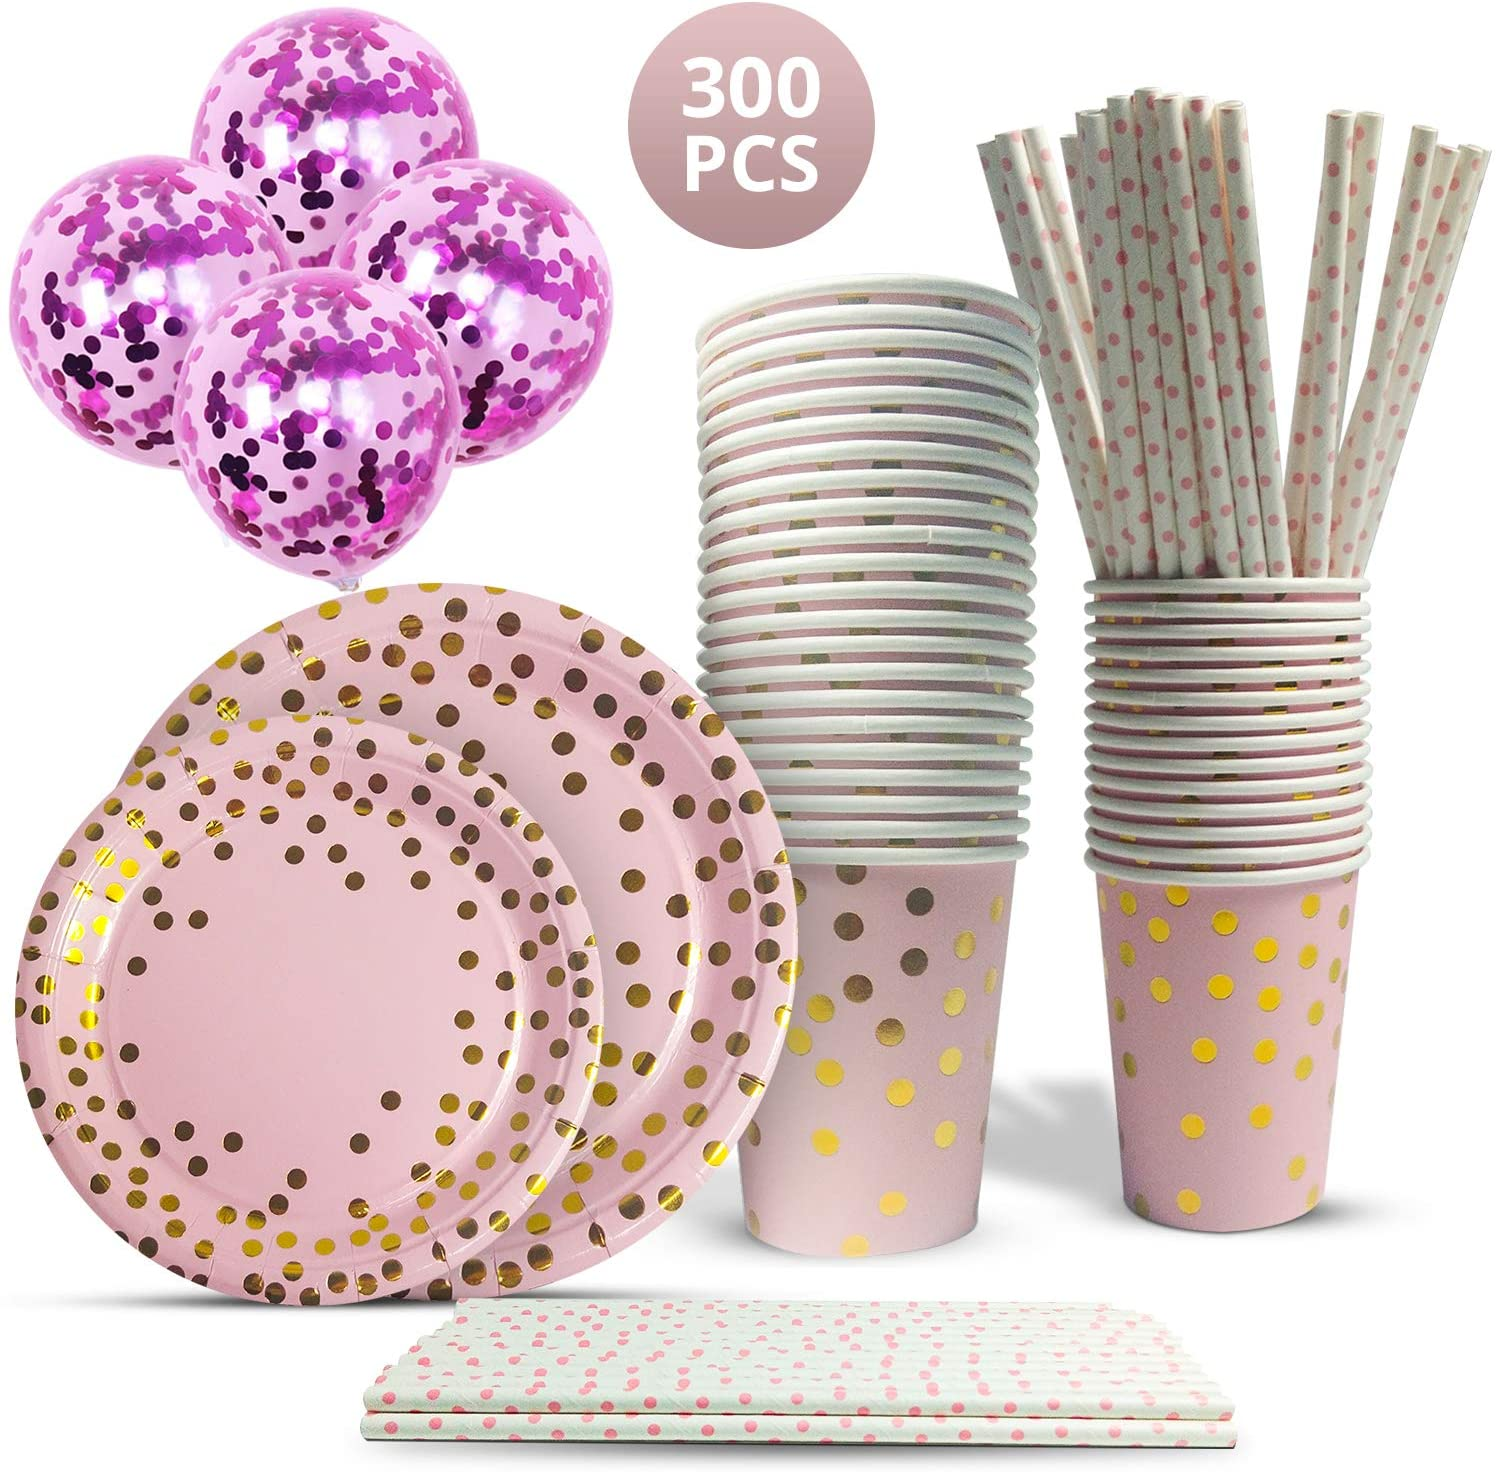 Mobius01 300 Pieces   Pink Polka Dots   Disposable Paper Tableware Set for Parties w/50 Dinner Plates, 50 Dessert Plates, 50 Cups, 50 Napkins, 50 Straws, 50 Balloons